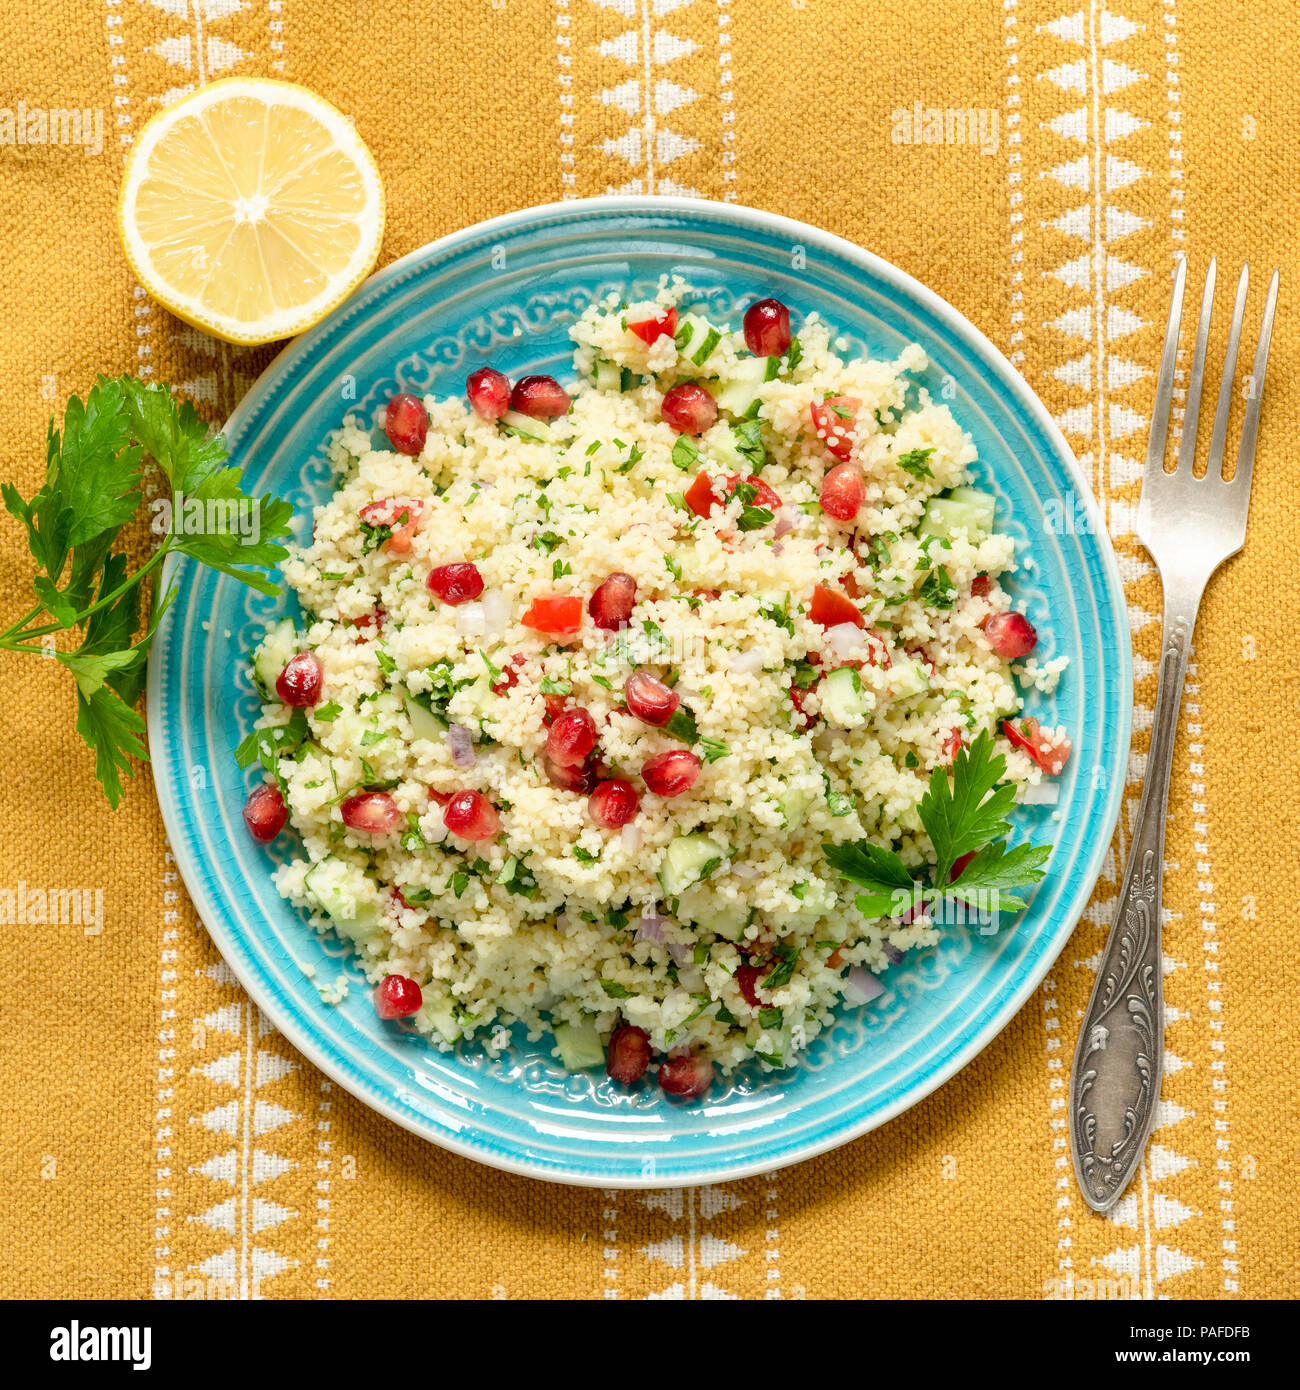 Couscous tabbouleh salad with pomegranate on blue teal plate over ethnic textile. Top view, square crop - Stock Image